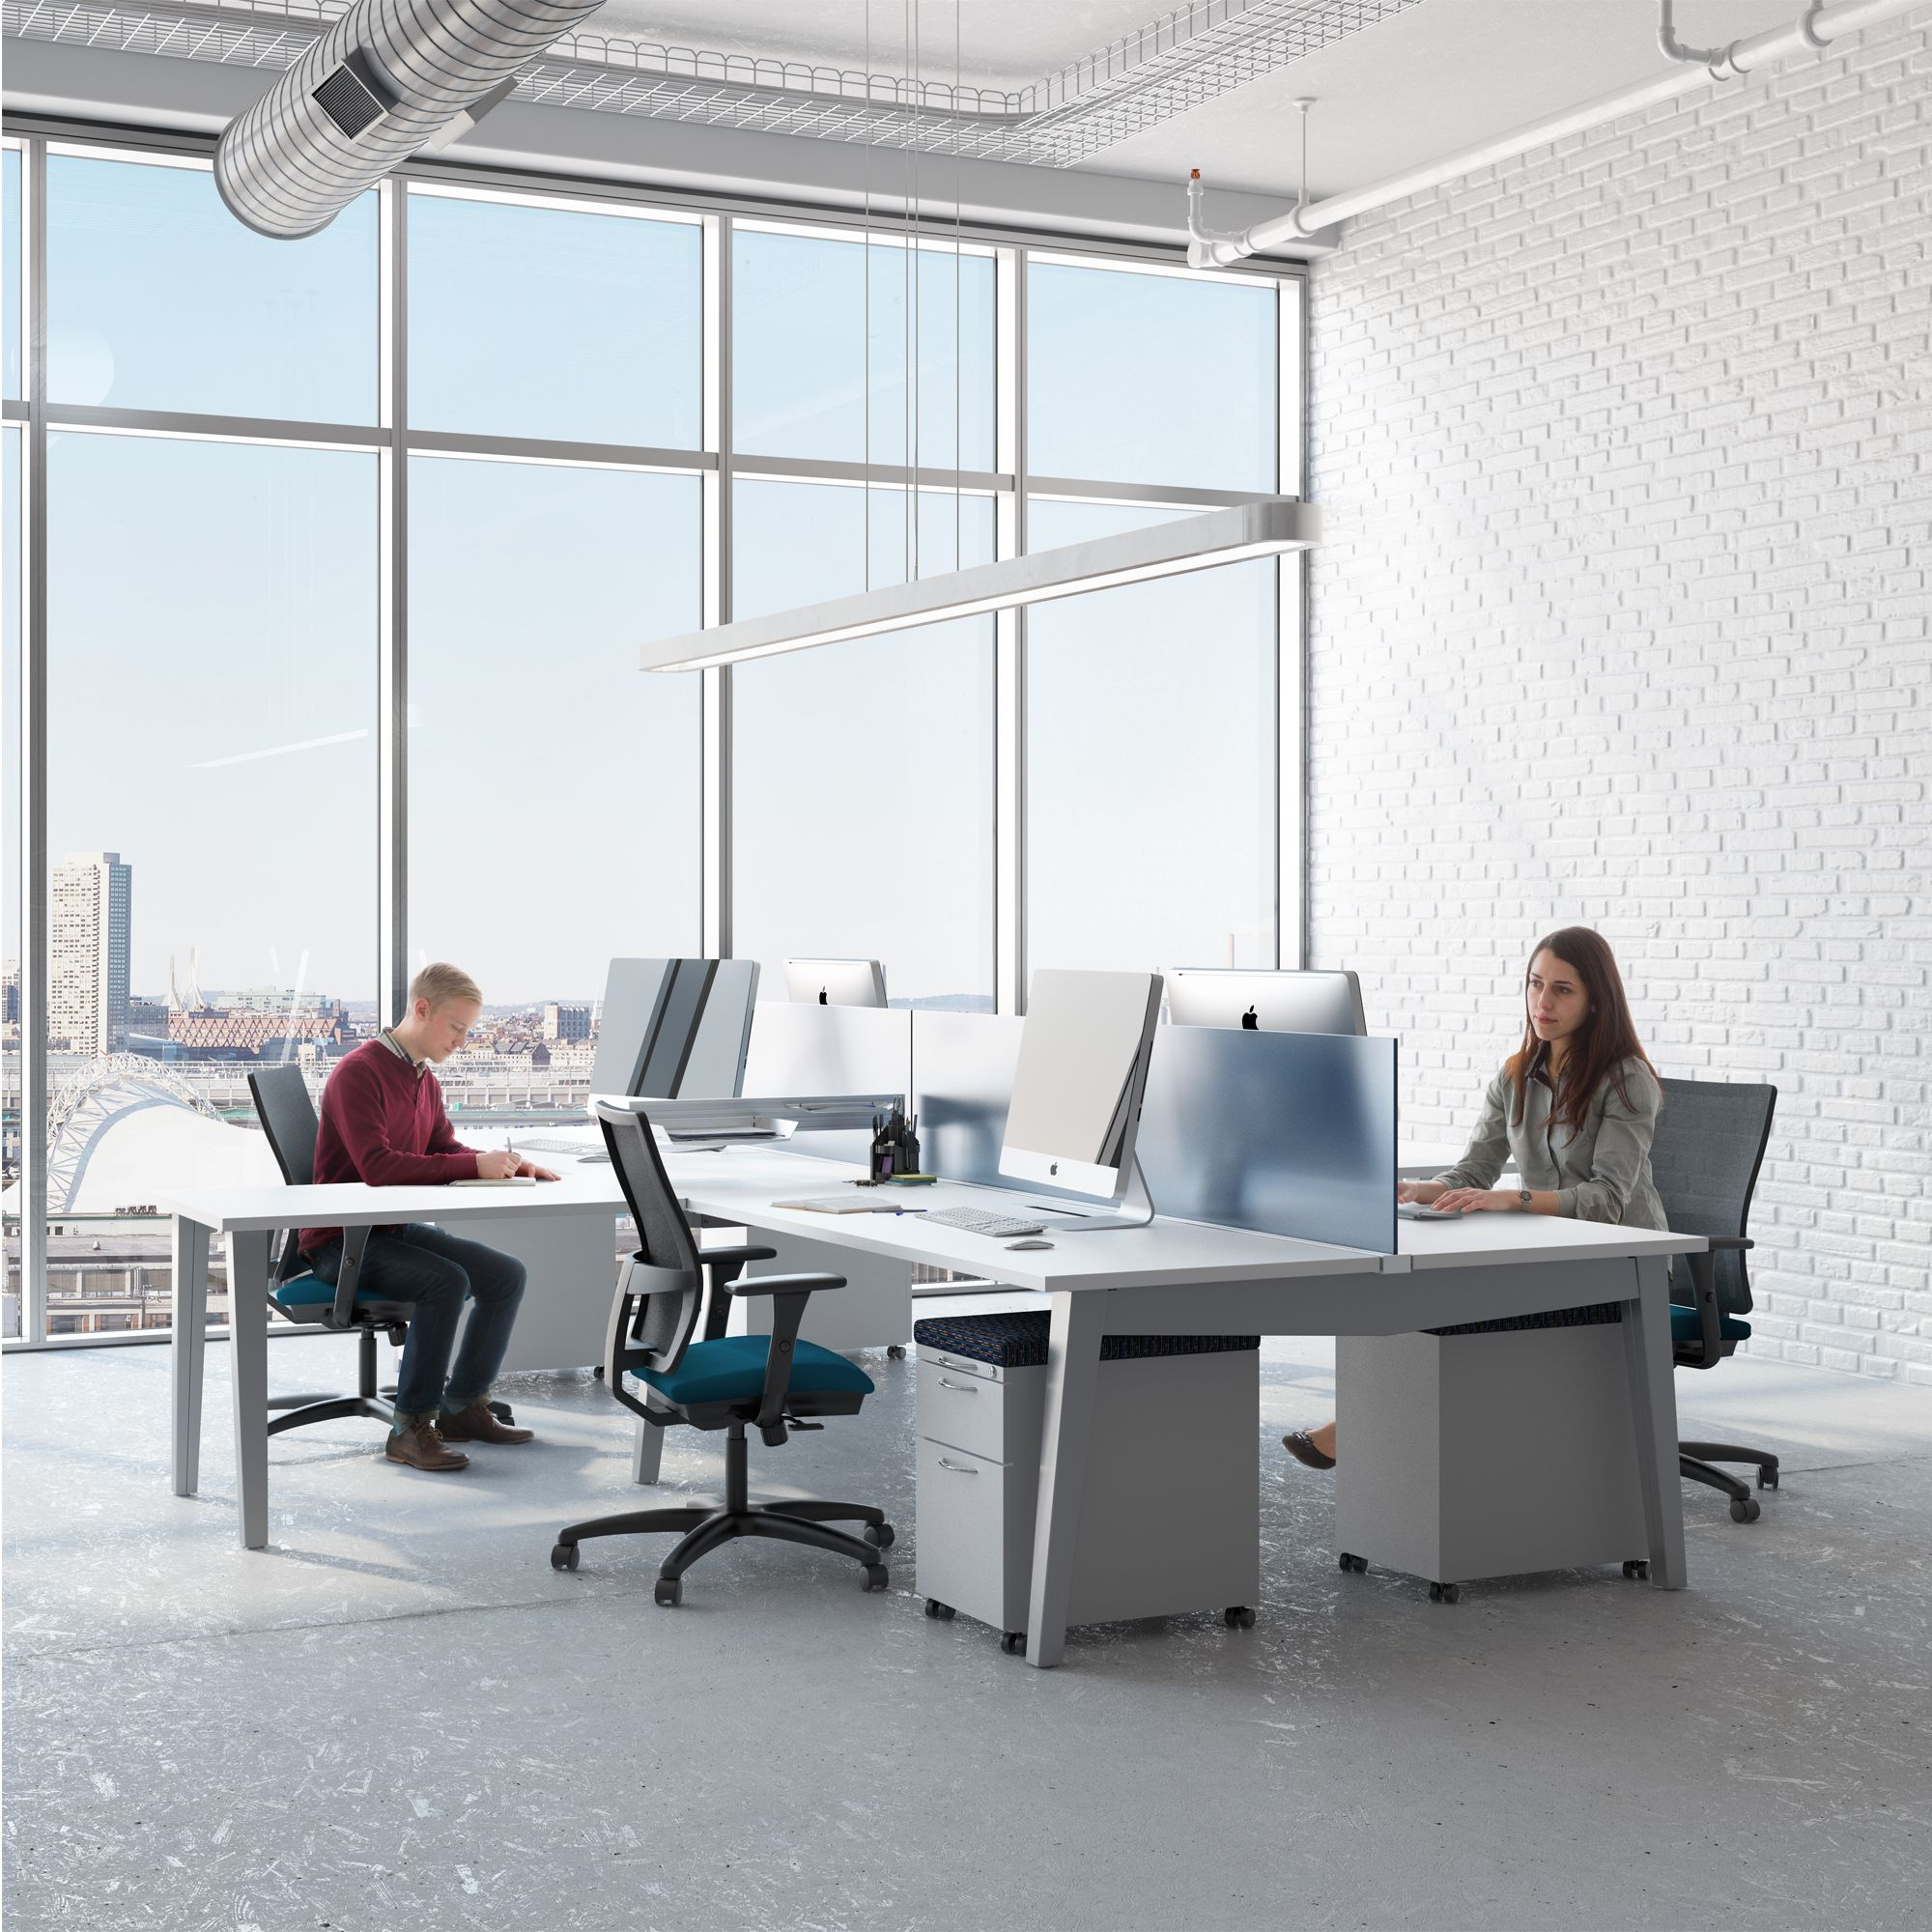 Save Space And Money, While Gaining Office Efficiency, Consider The Oxygen  Office Furniture Systems By AIS! Accomplish This With Under The Desk Power  And ...